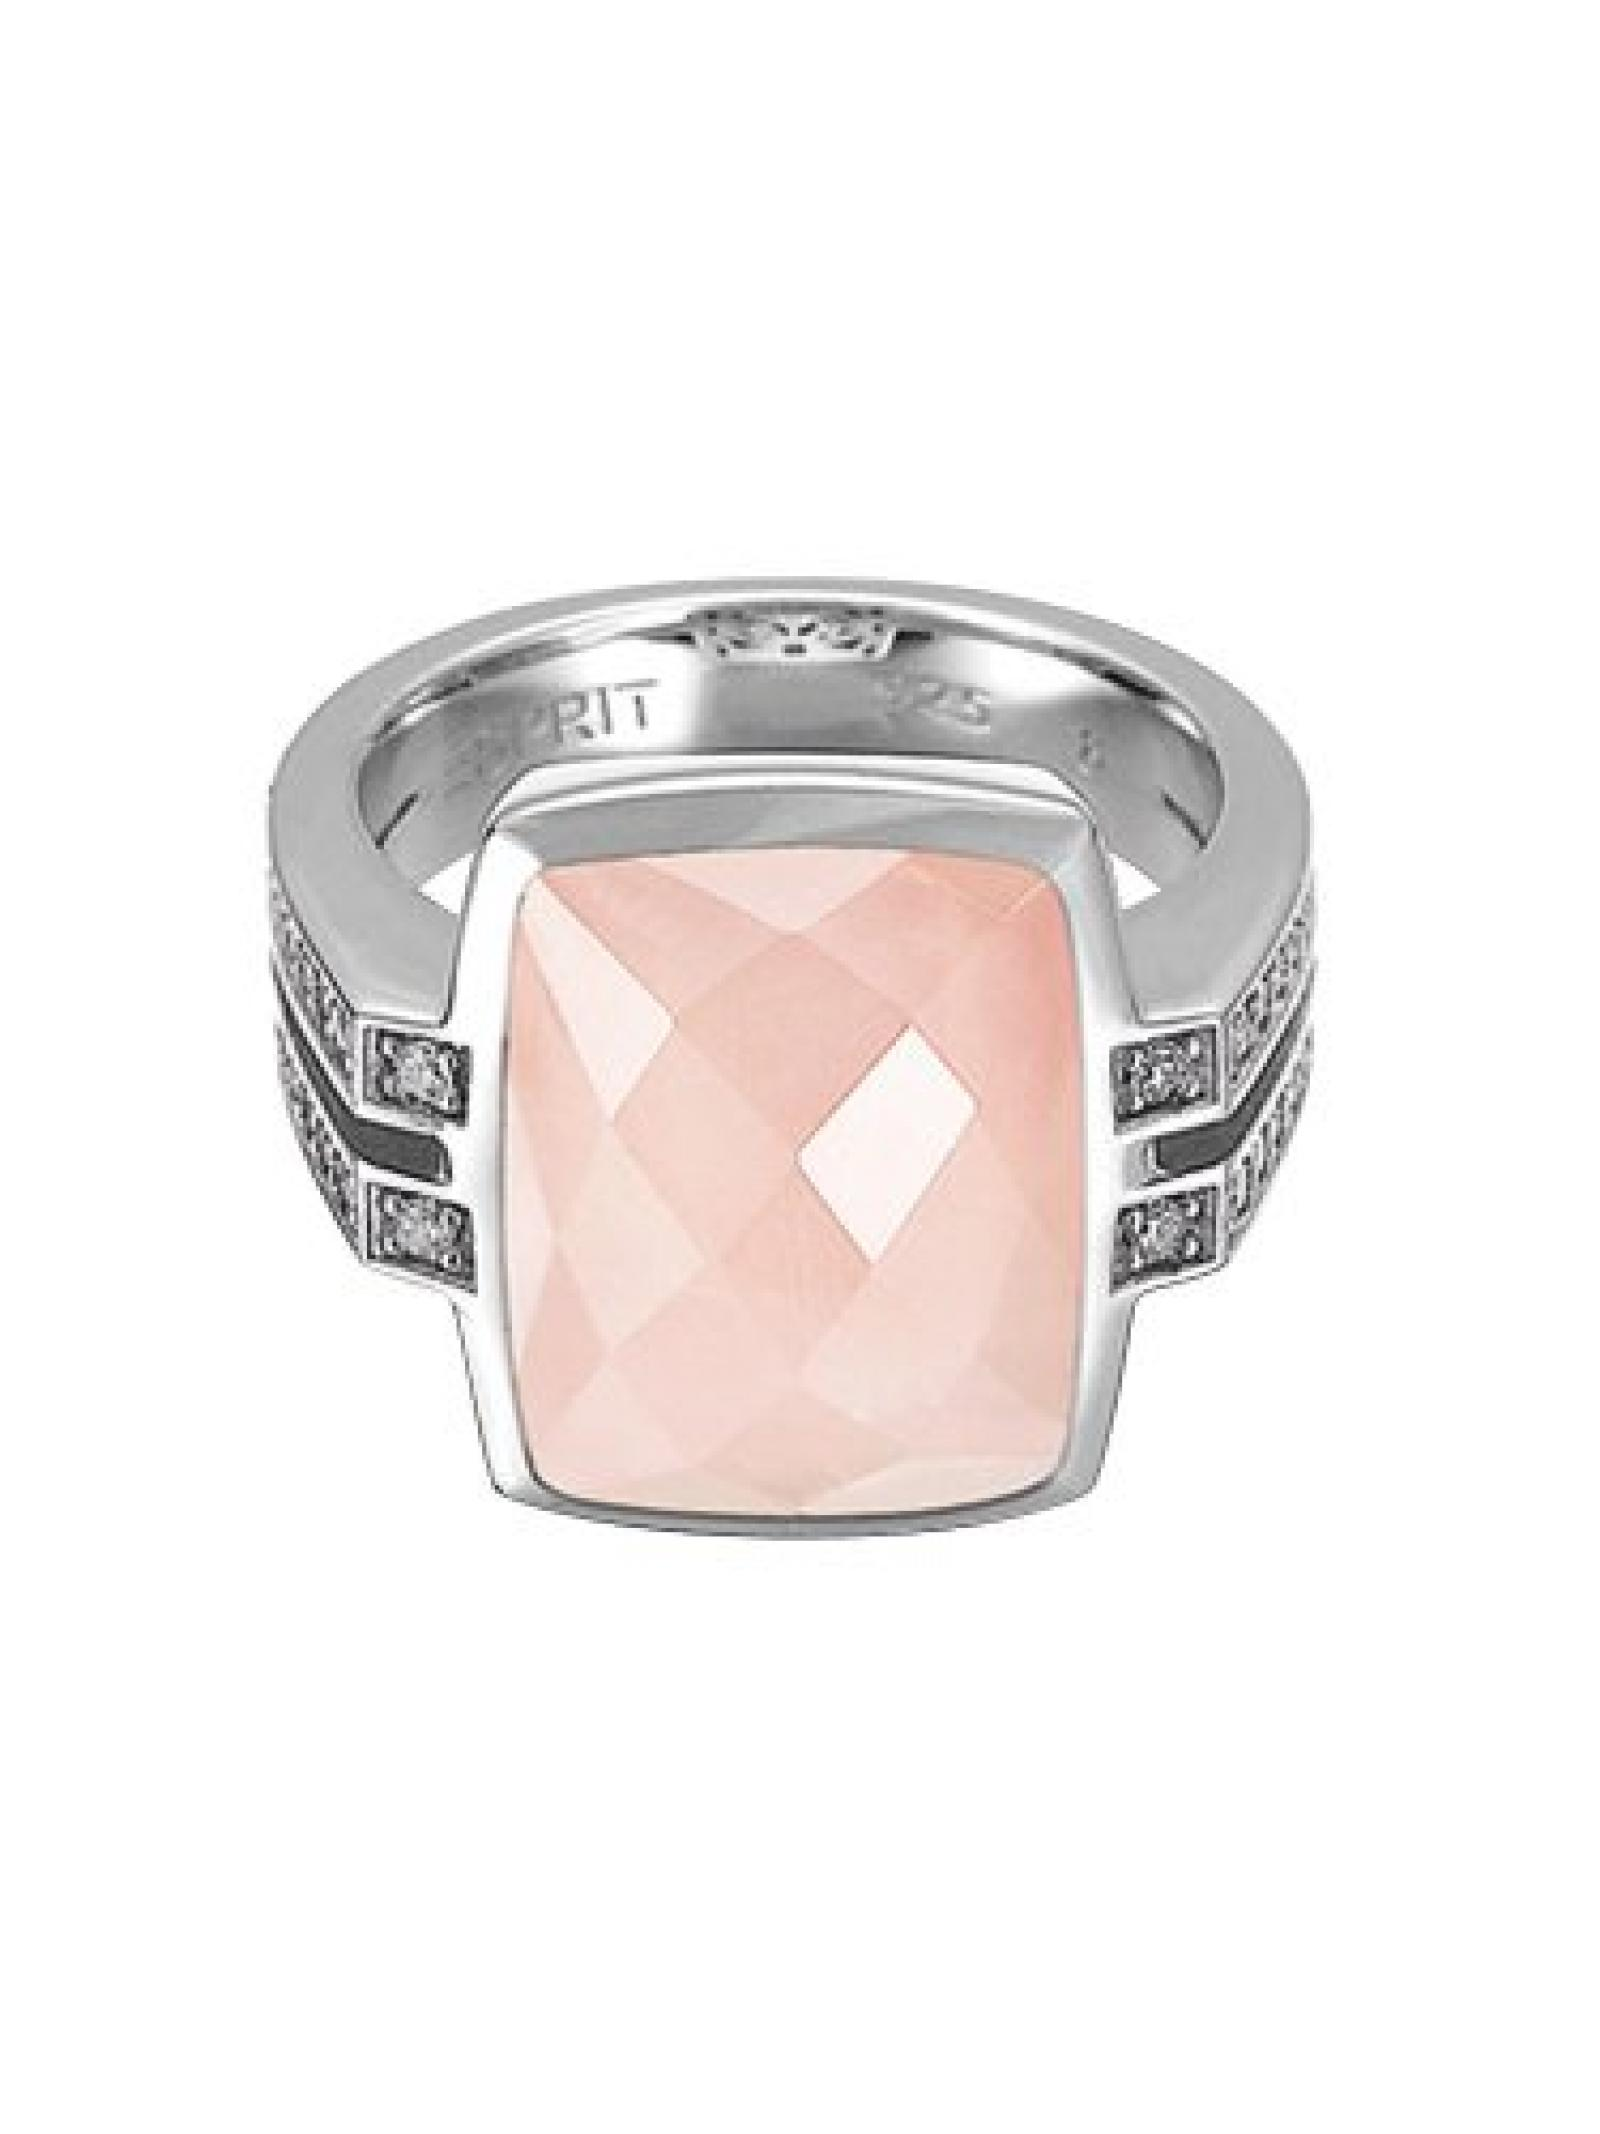 Esprit Swank Rose Ring ESRG91699B